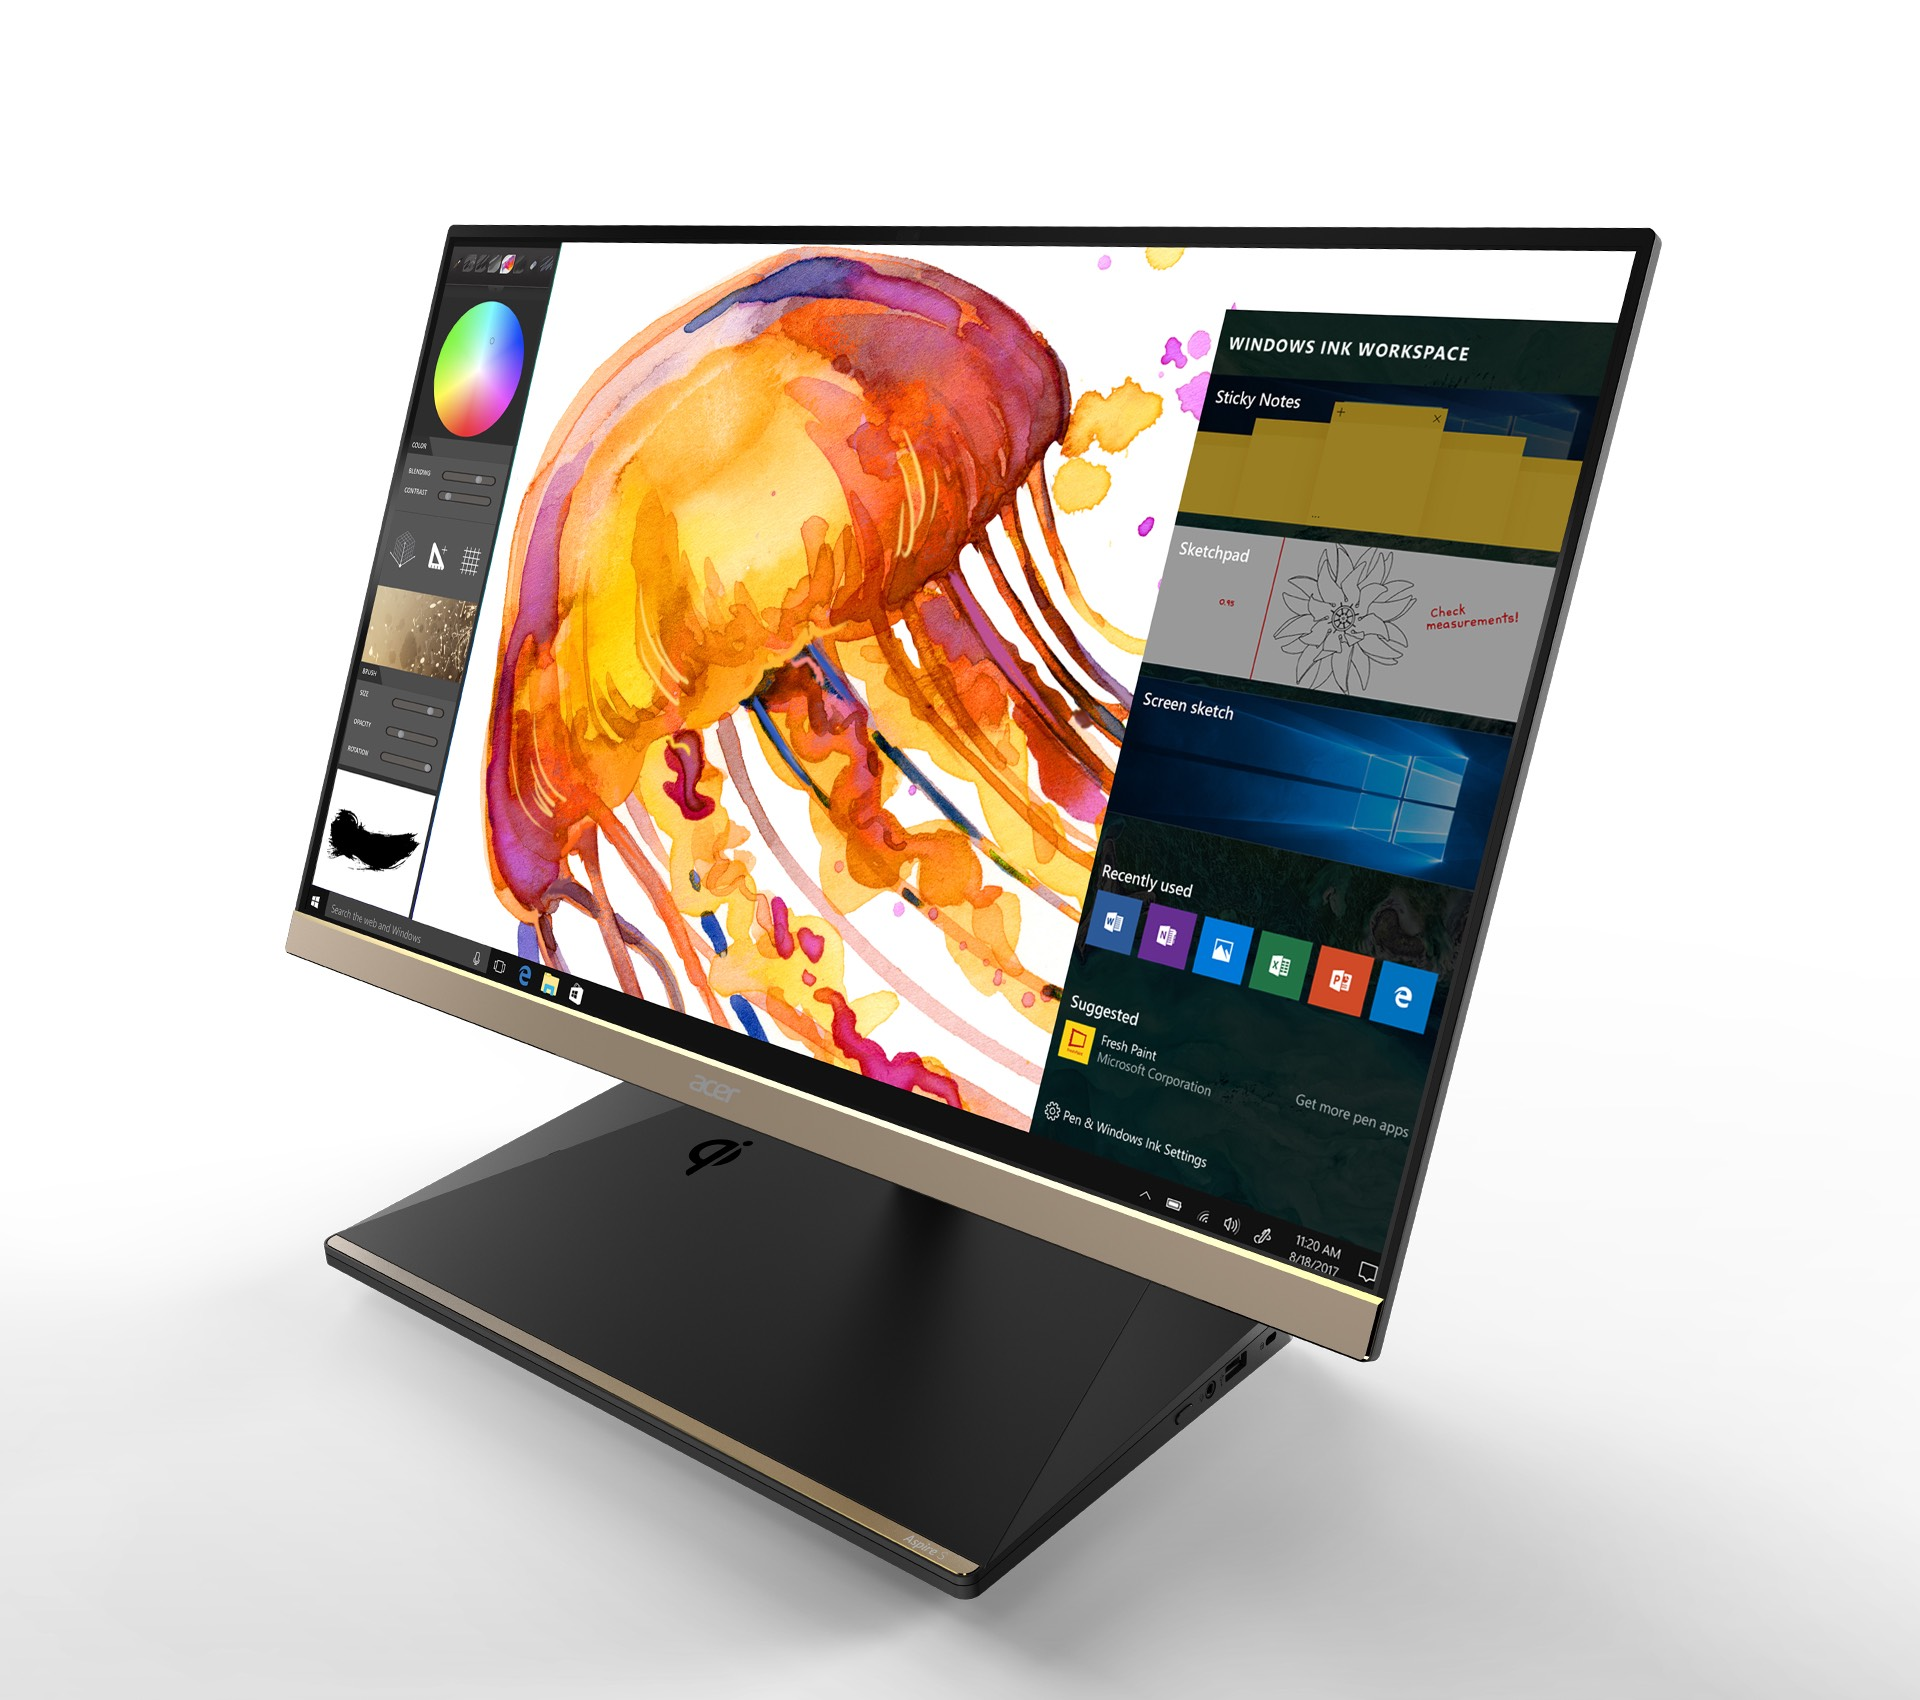 Acer's slimmest ever All-in-One now available in the US 2